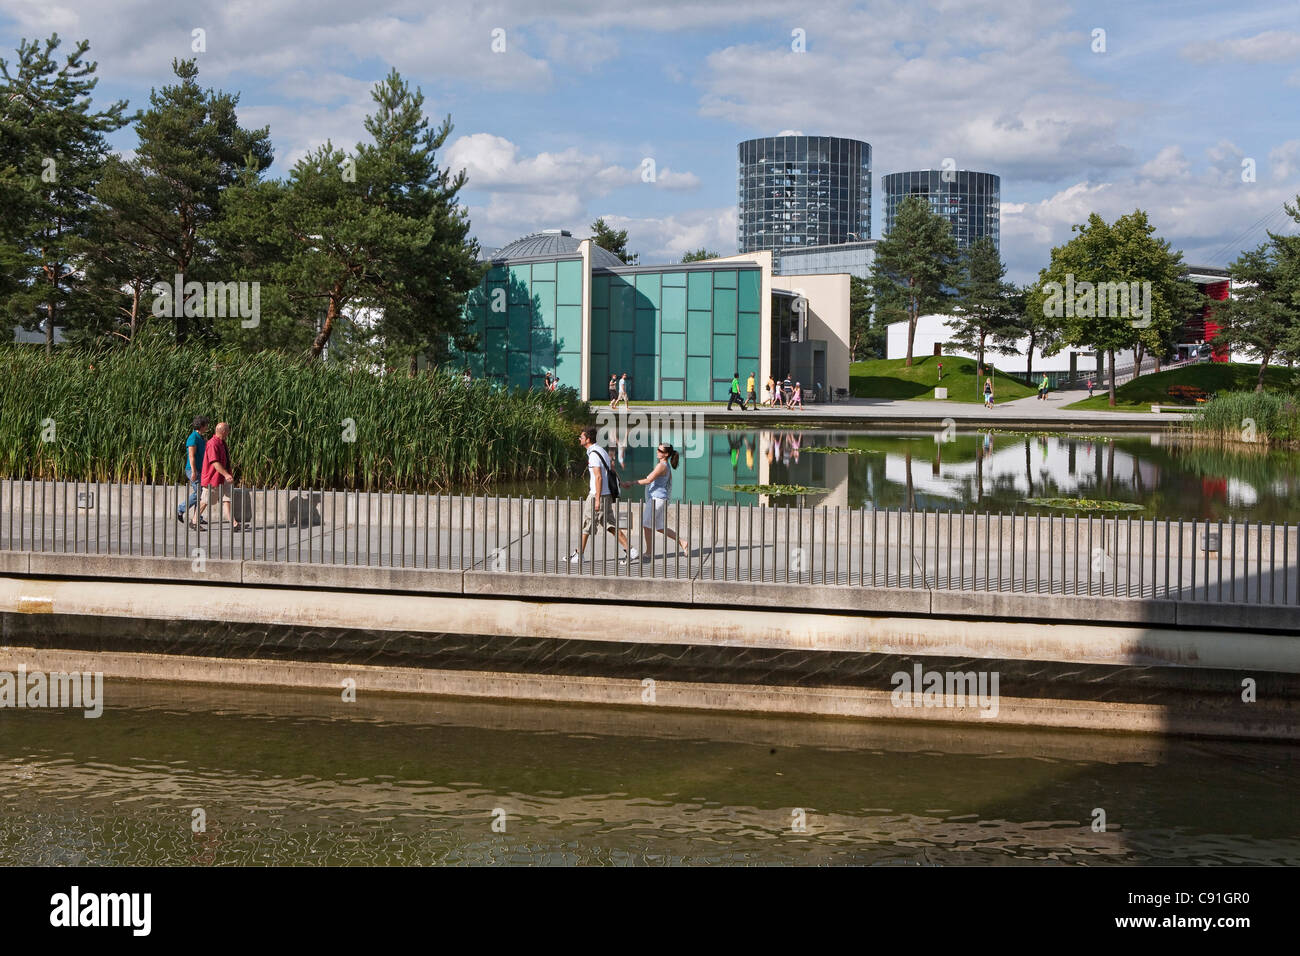 Visitors walking in the park in the Volkswagen Autostadt, Wolfsburg, Lower Saxony, Germany - Stock Image